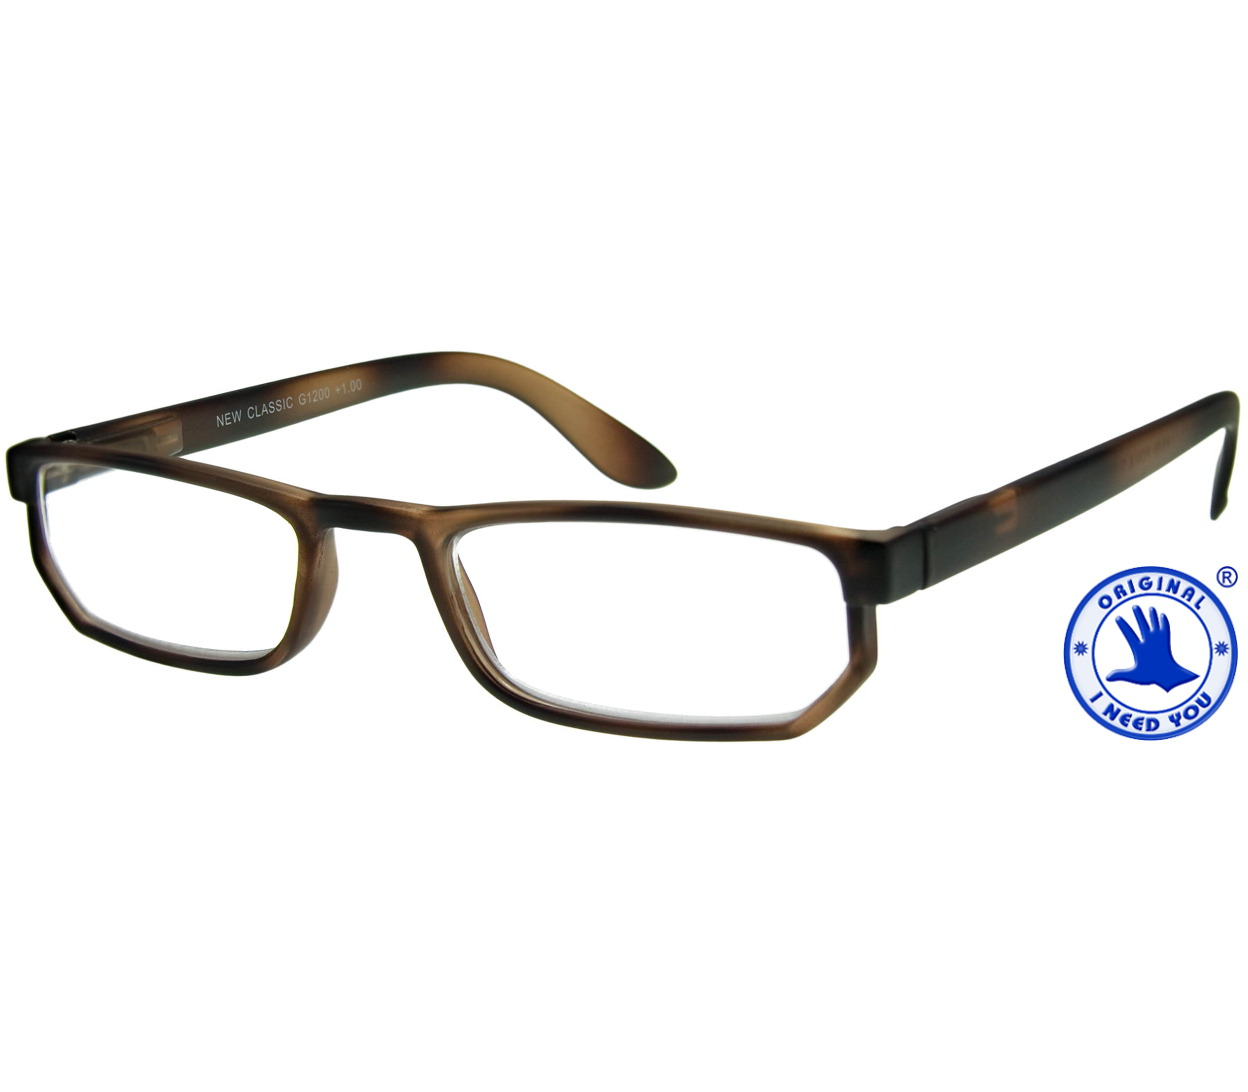 Main Image (Angle) - Warwick (Tortoiseshell) Classic Reading Glasses